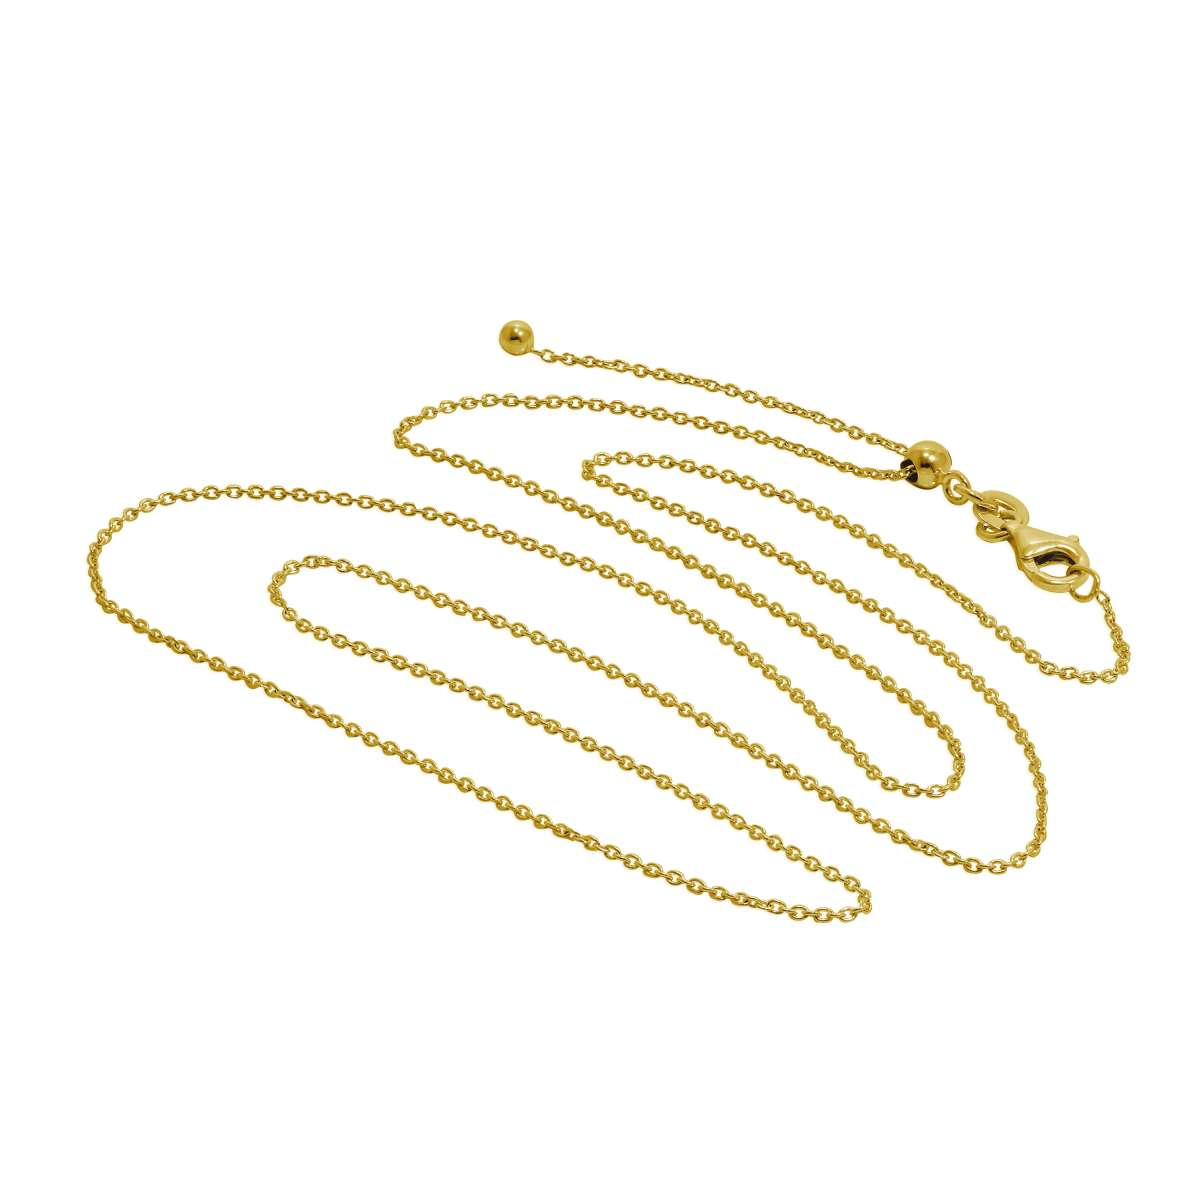 Alterative image for Gold Plated Sterling Silver Adjustable Slider Necklace 24 Inches